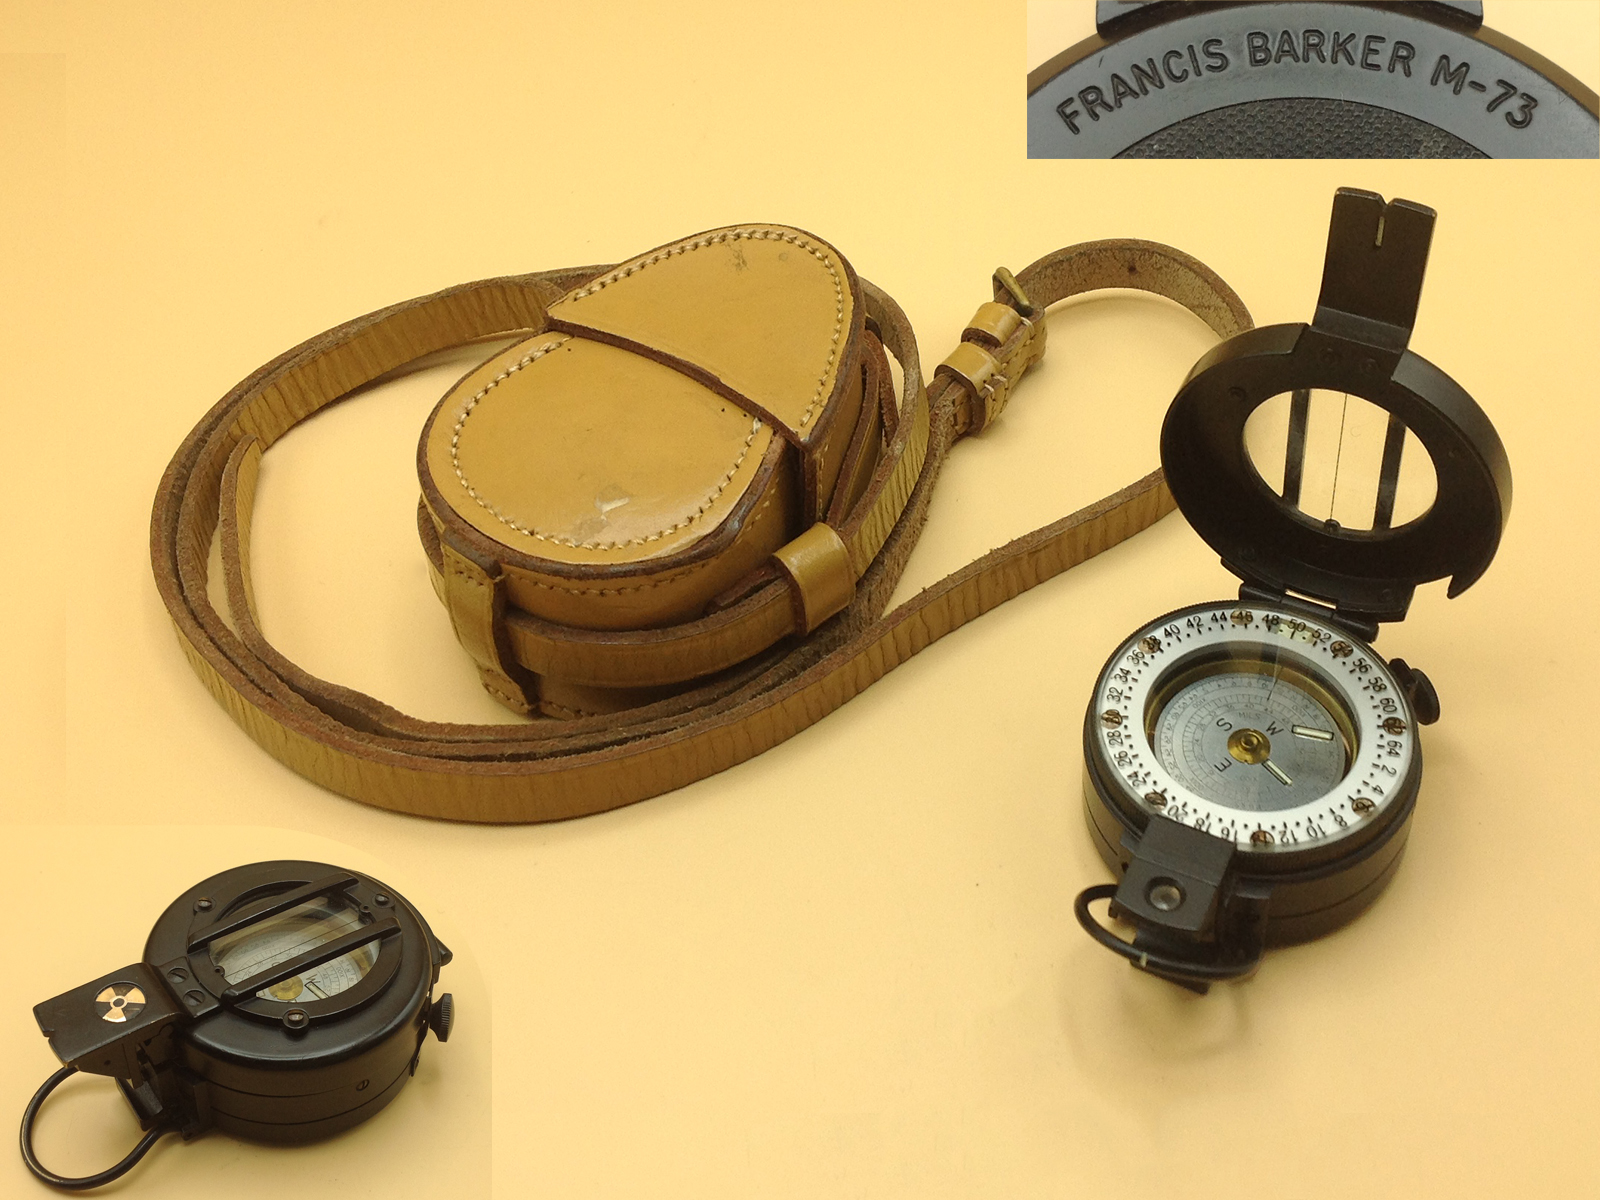 Francis Barker M-73 military prismatic compass